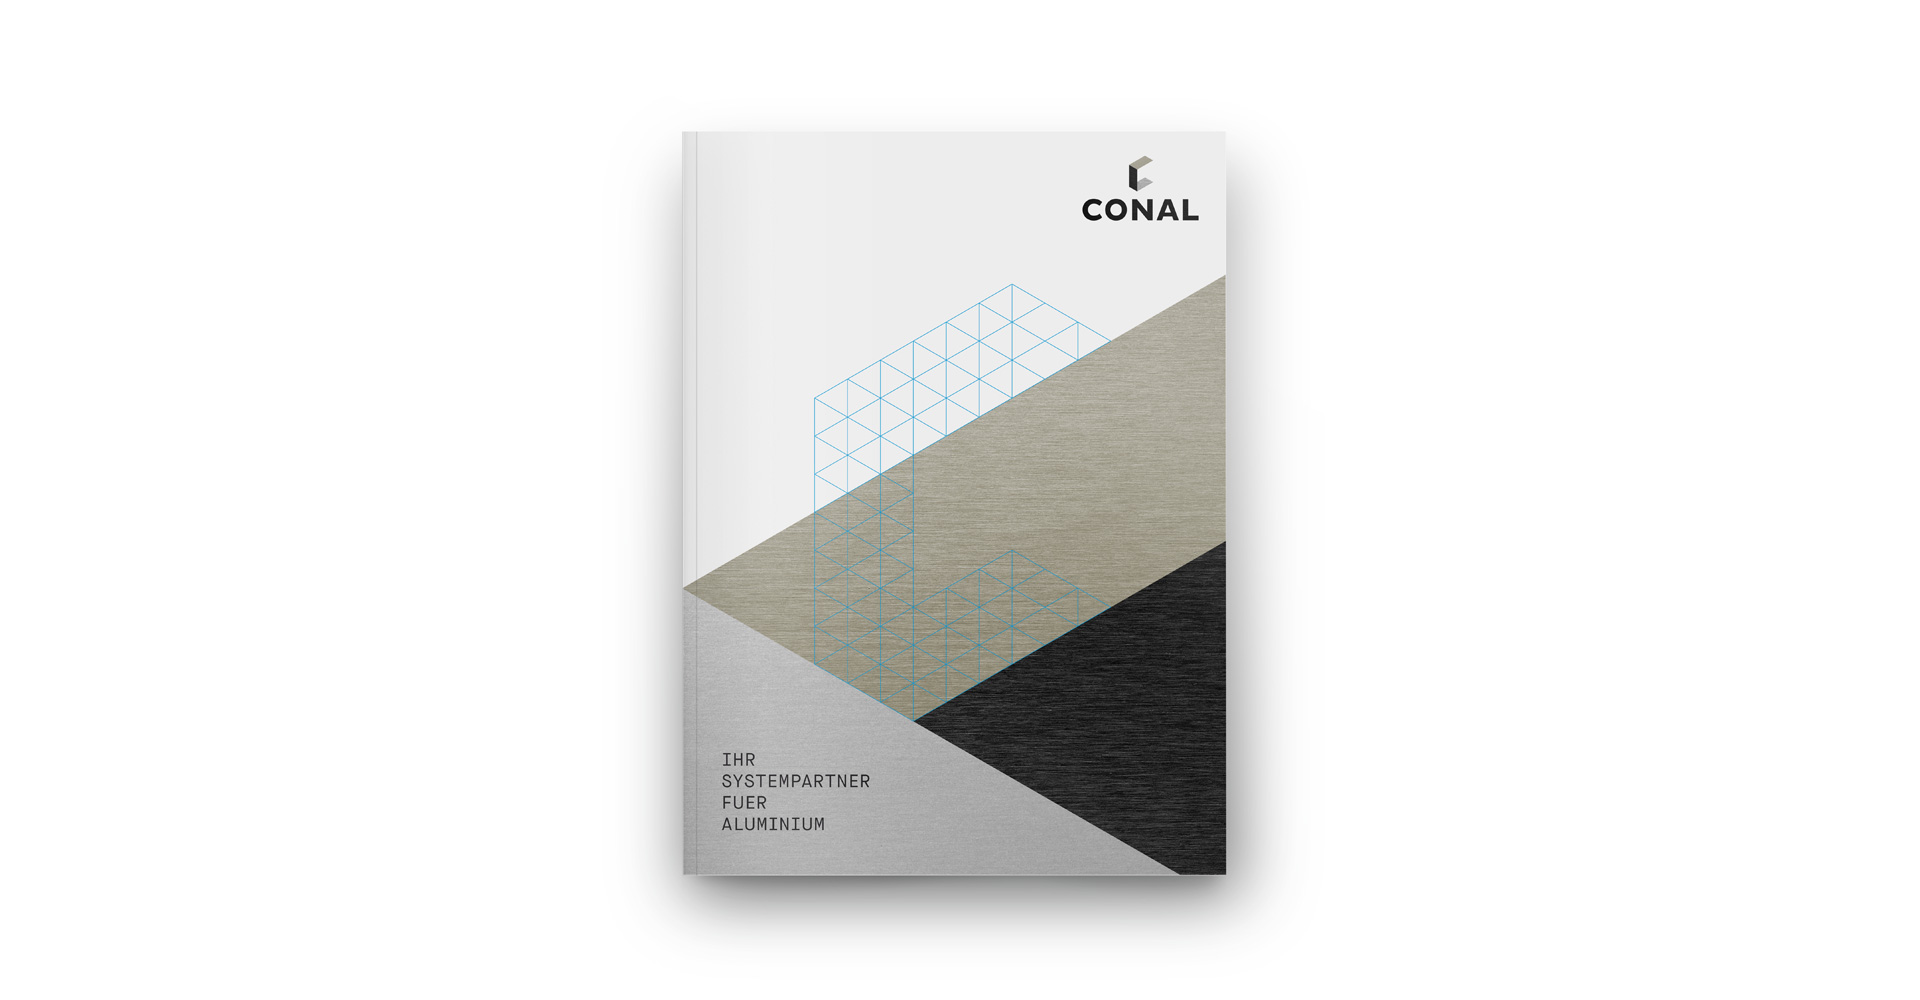 conal corporate design 11